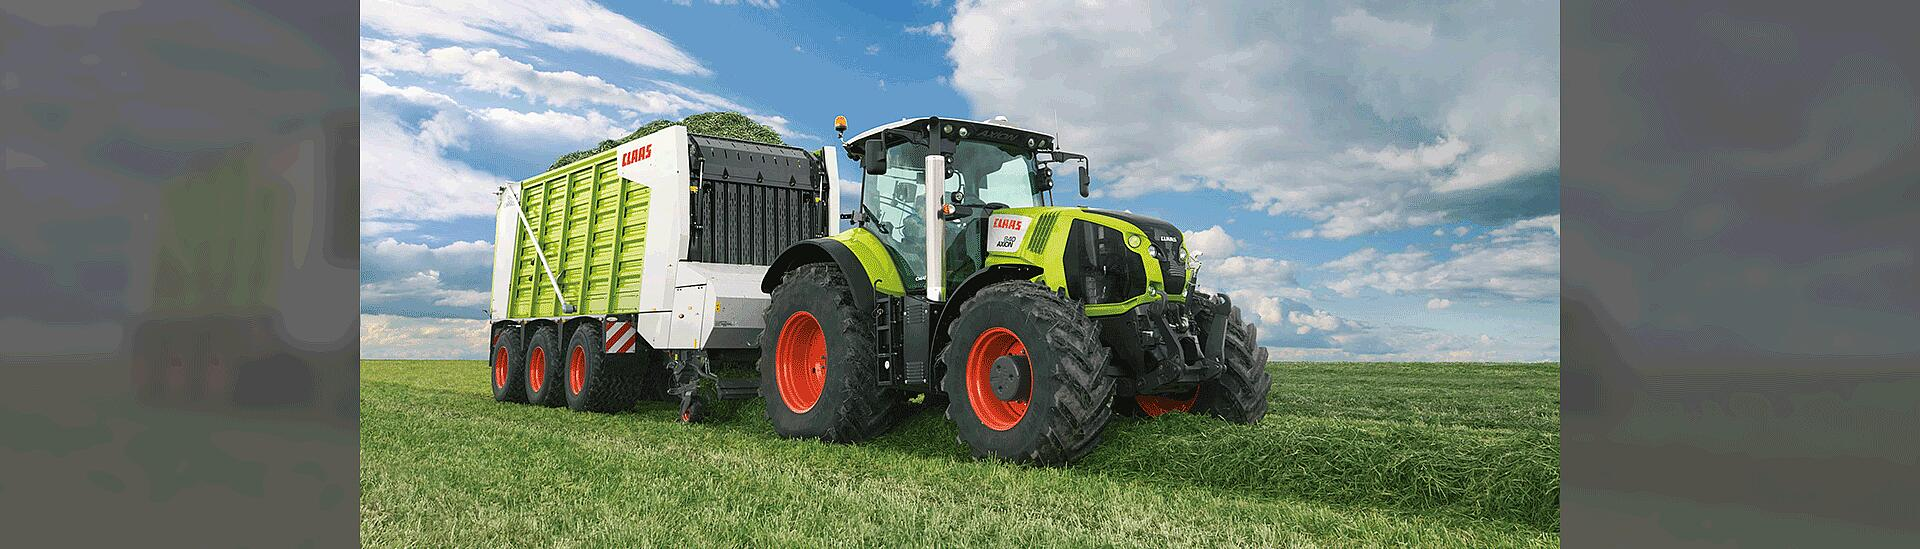 Industry Agricultural machinery by KTR Systems GmbH